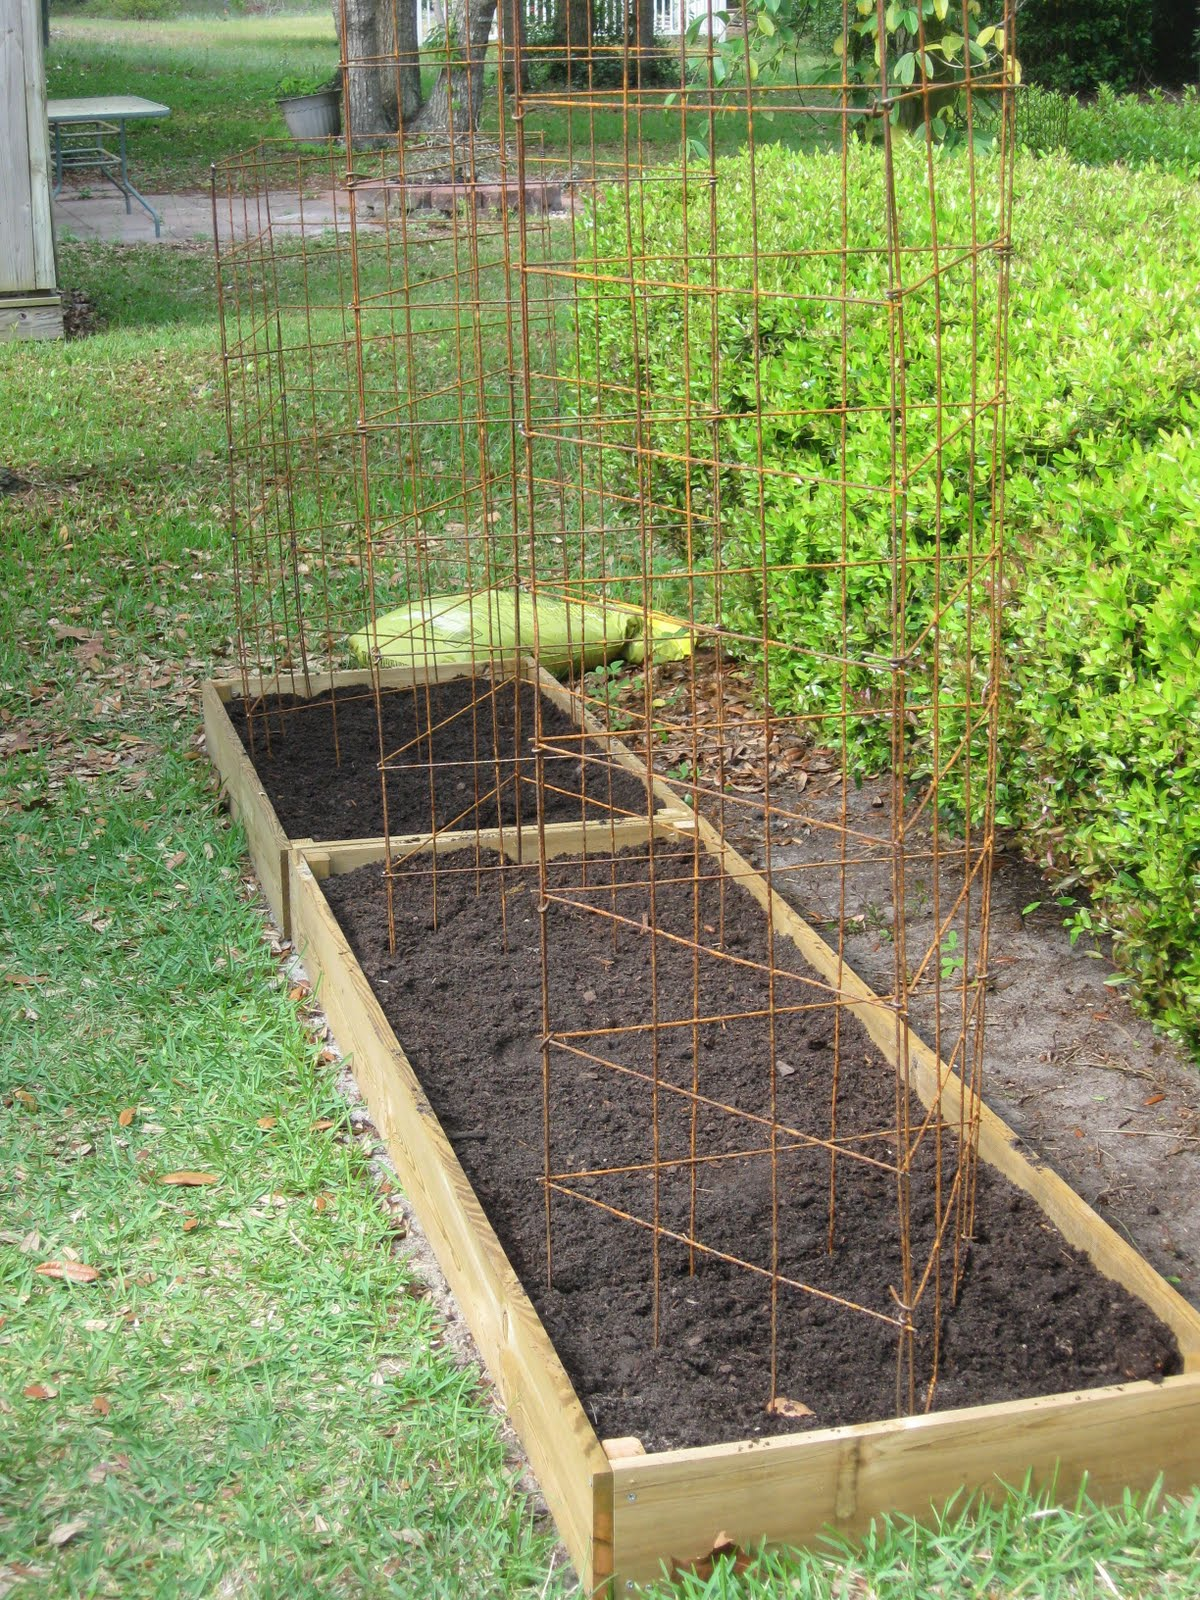 Gardening From the Ground Up: May 31, 2011 on